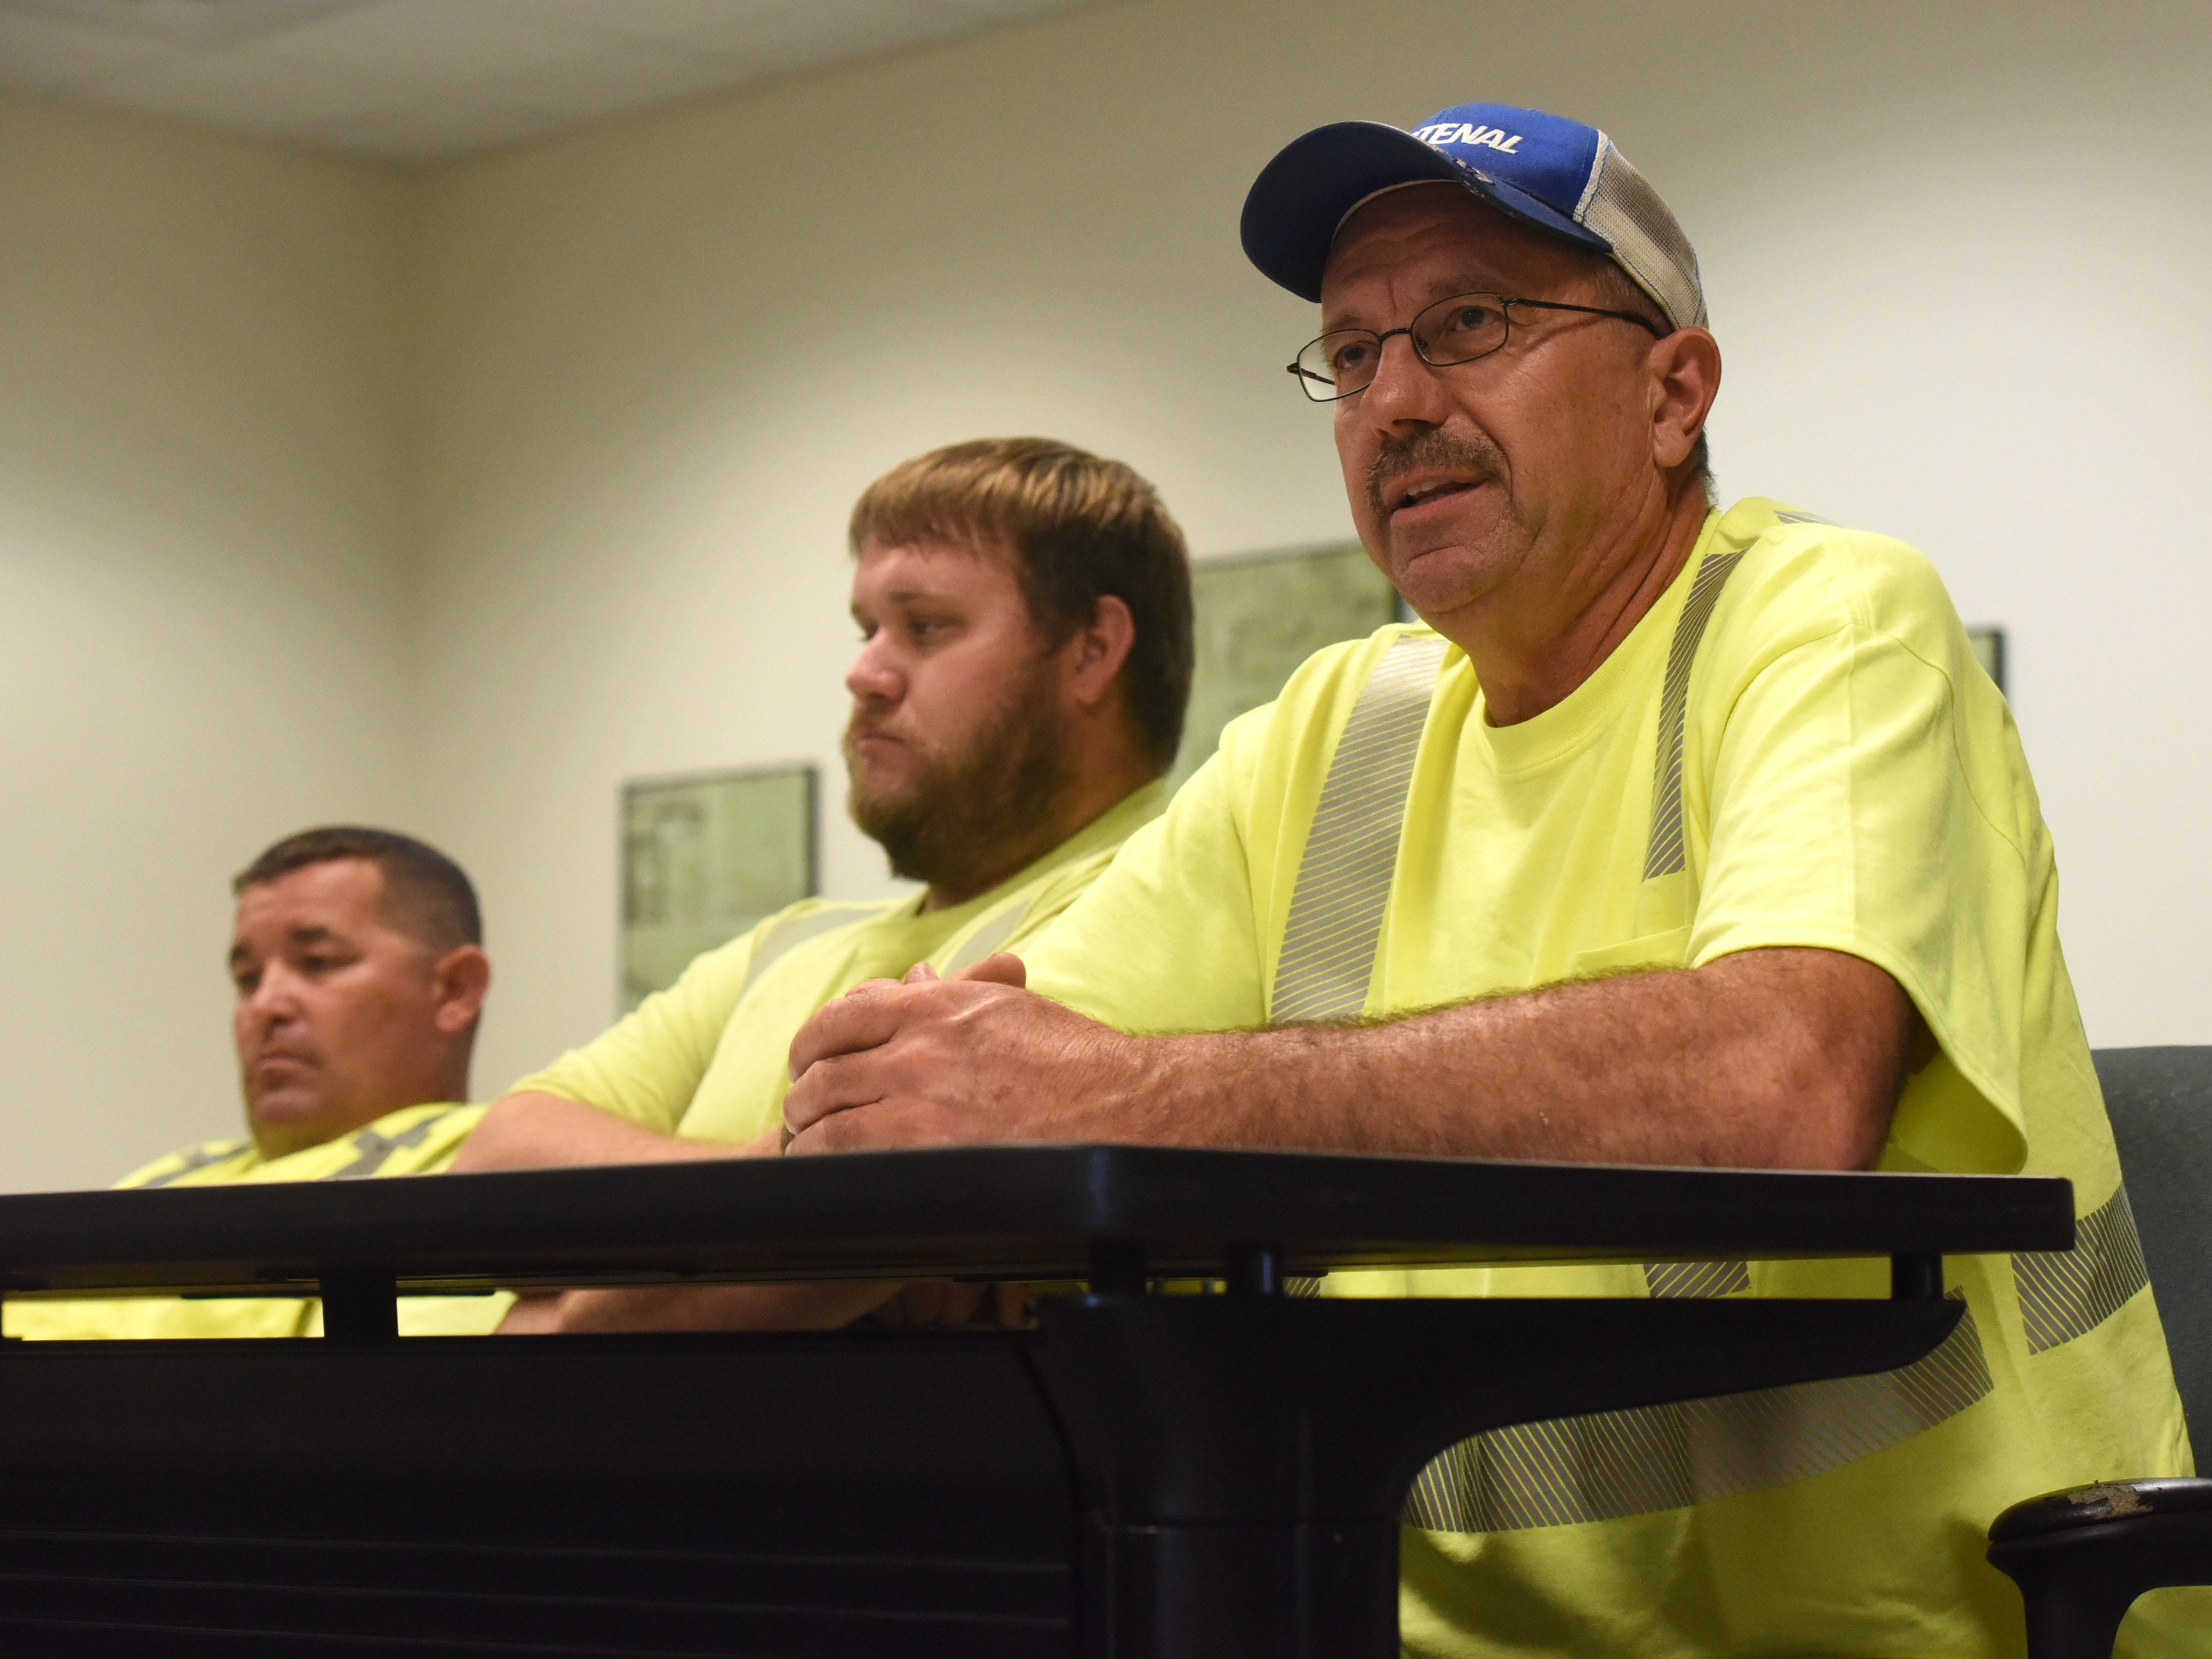 SDDOT honors workers who went 'above and beyond' to save suicidal boy on I-90